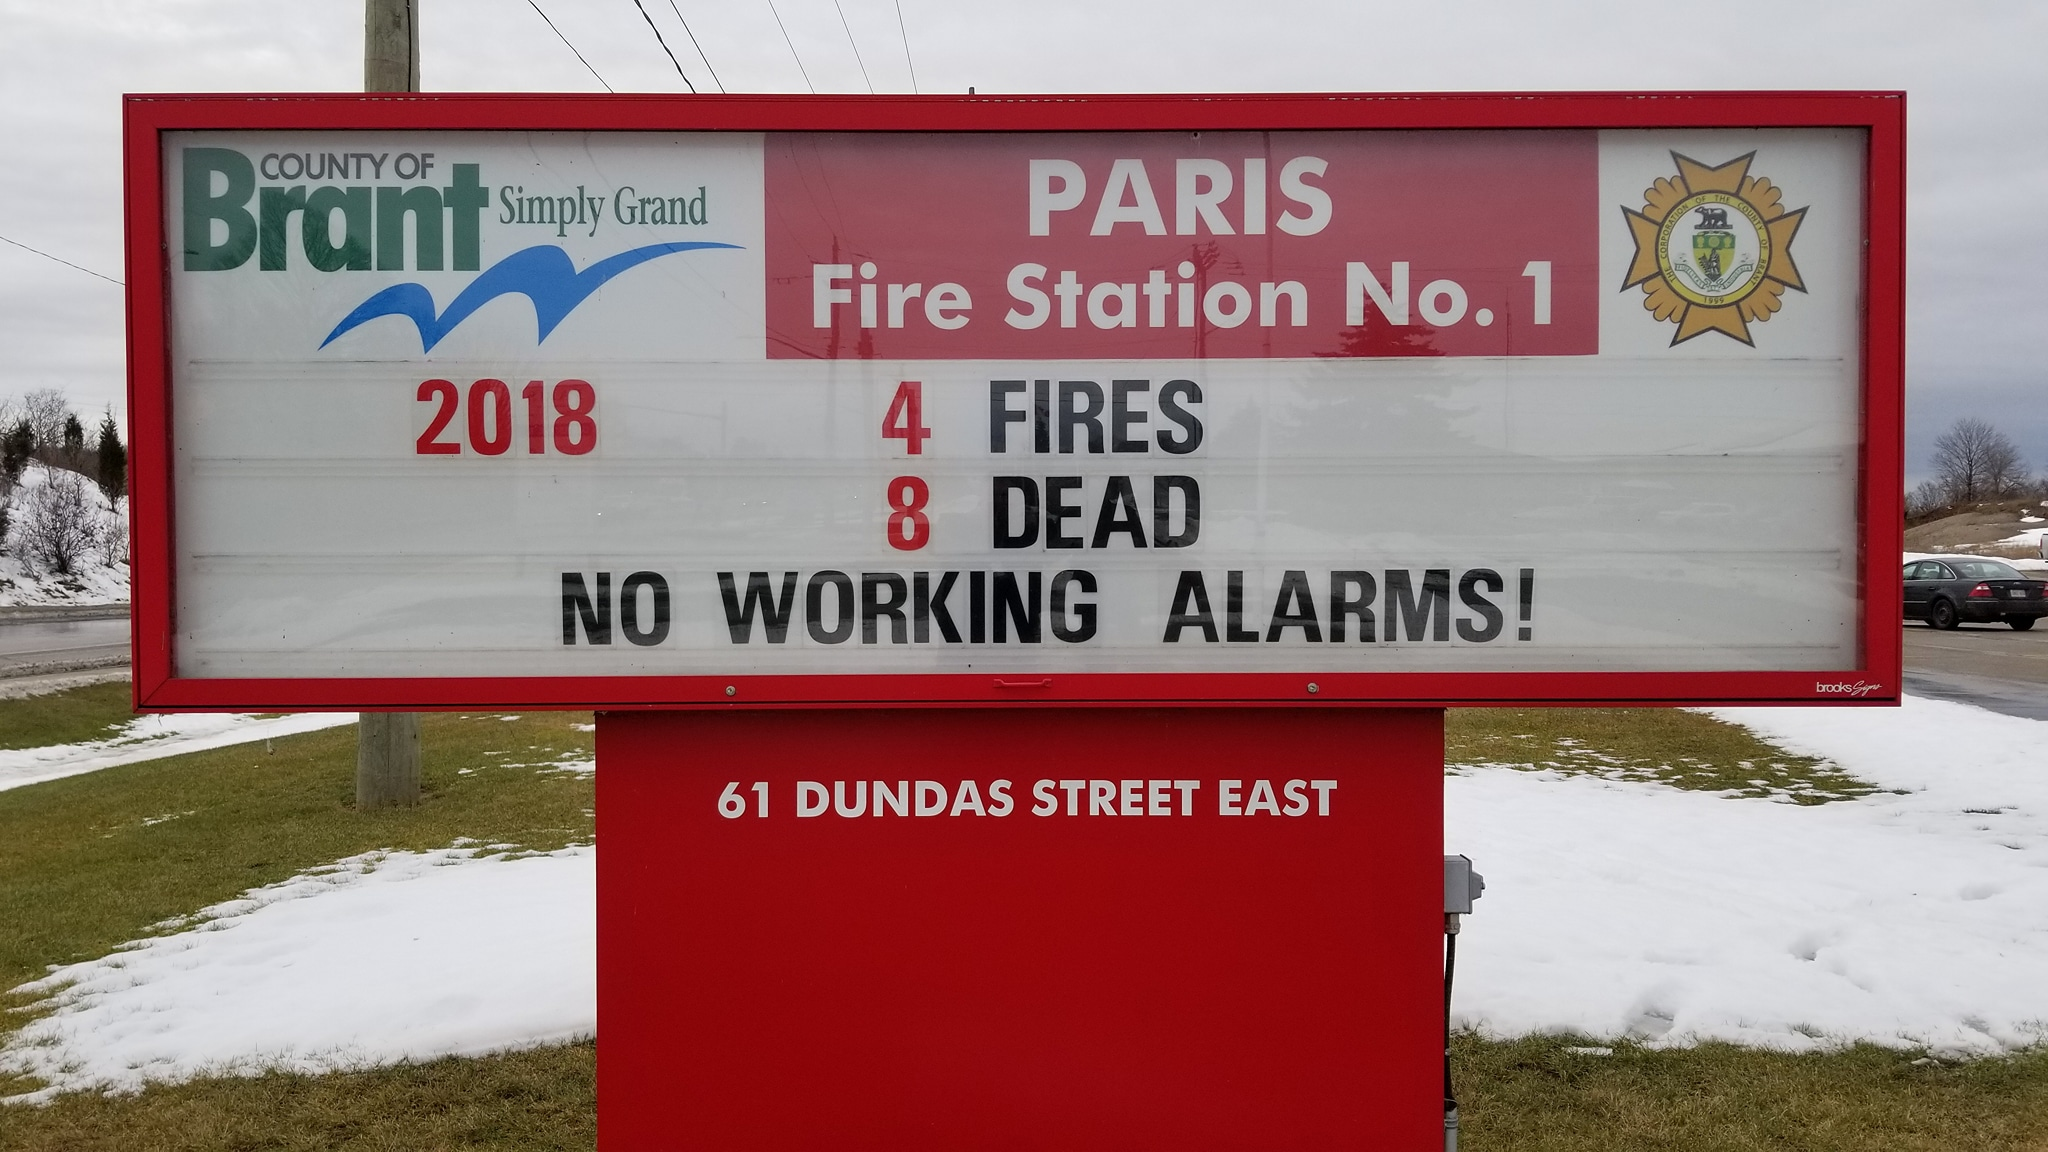 Fire sign image